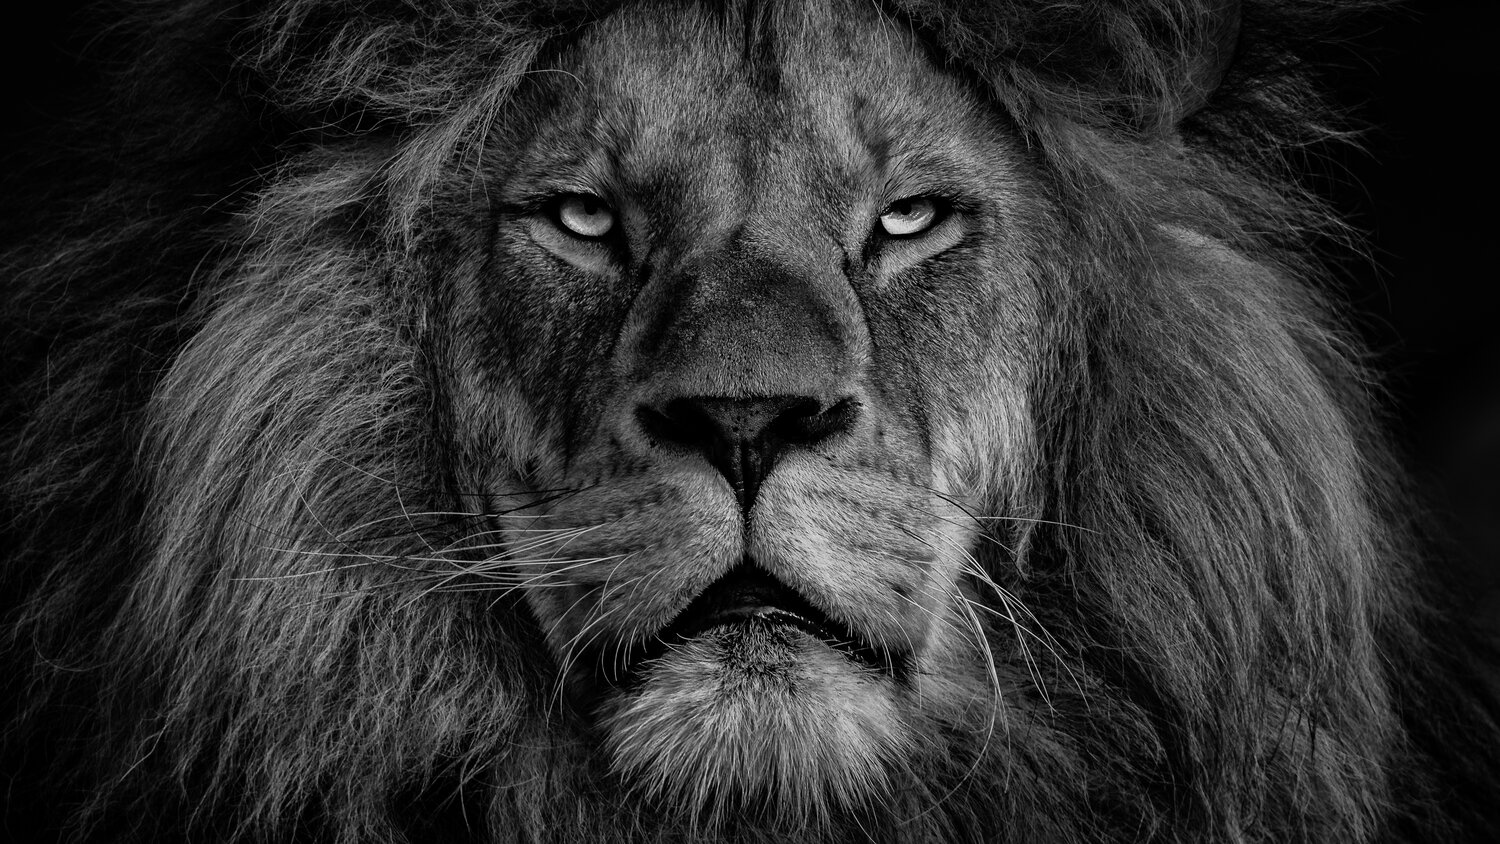 What makes the lion the king of the jungle?